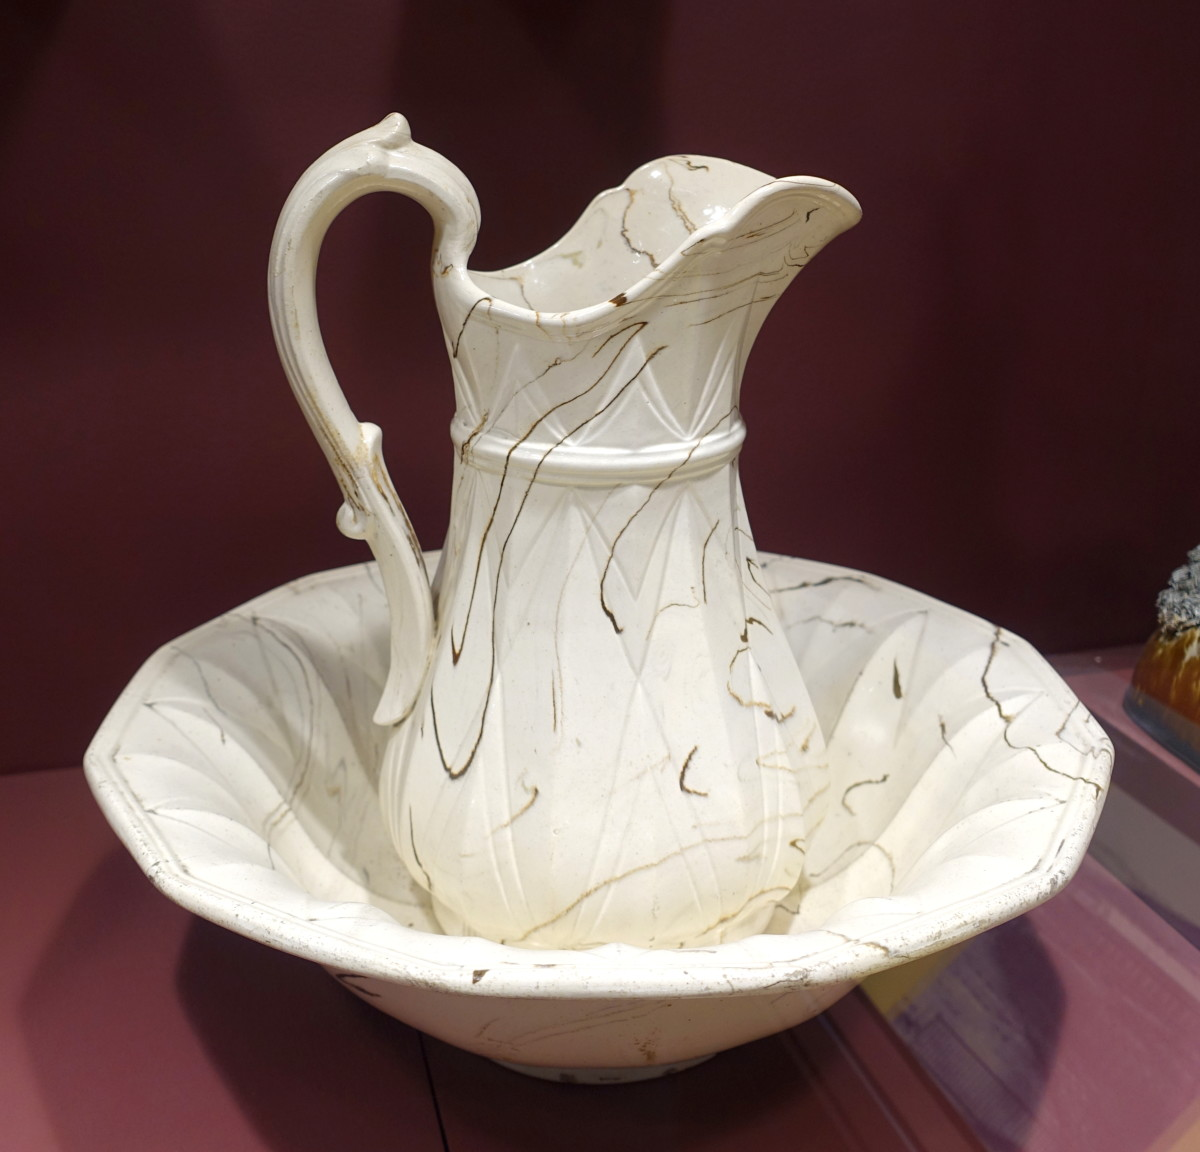 A pitcher and washbowl, the idea for this article.